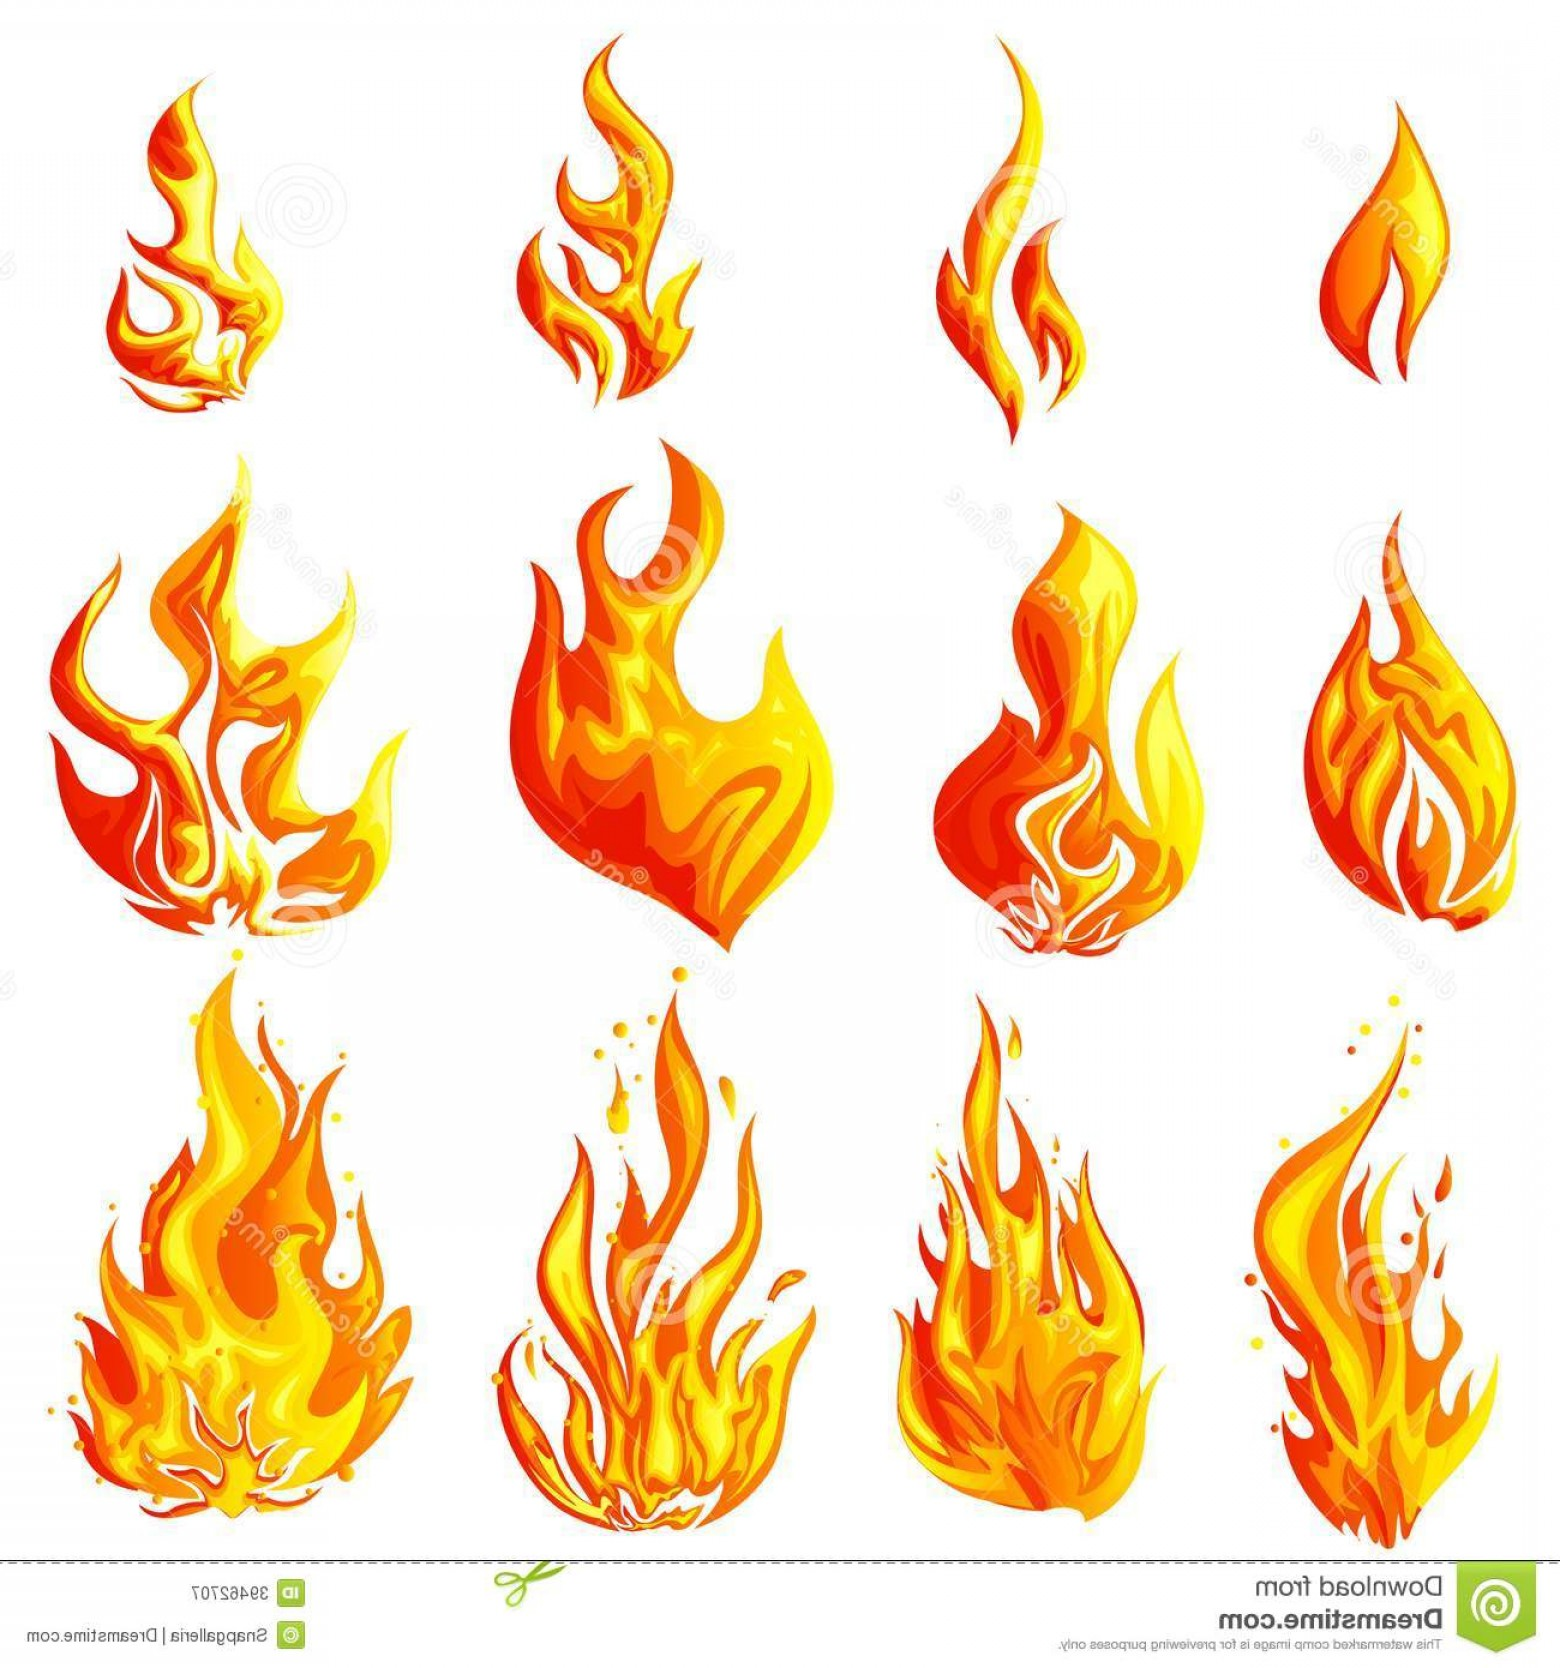 Vector Flame Stick Pattern: Royalty Free Stock Photography Fire Flame Easy To Edit Vector Illustration Collection Image